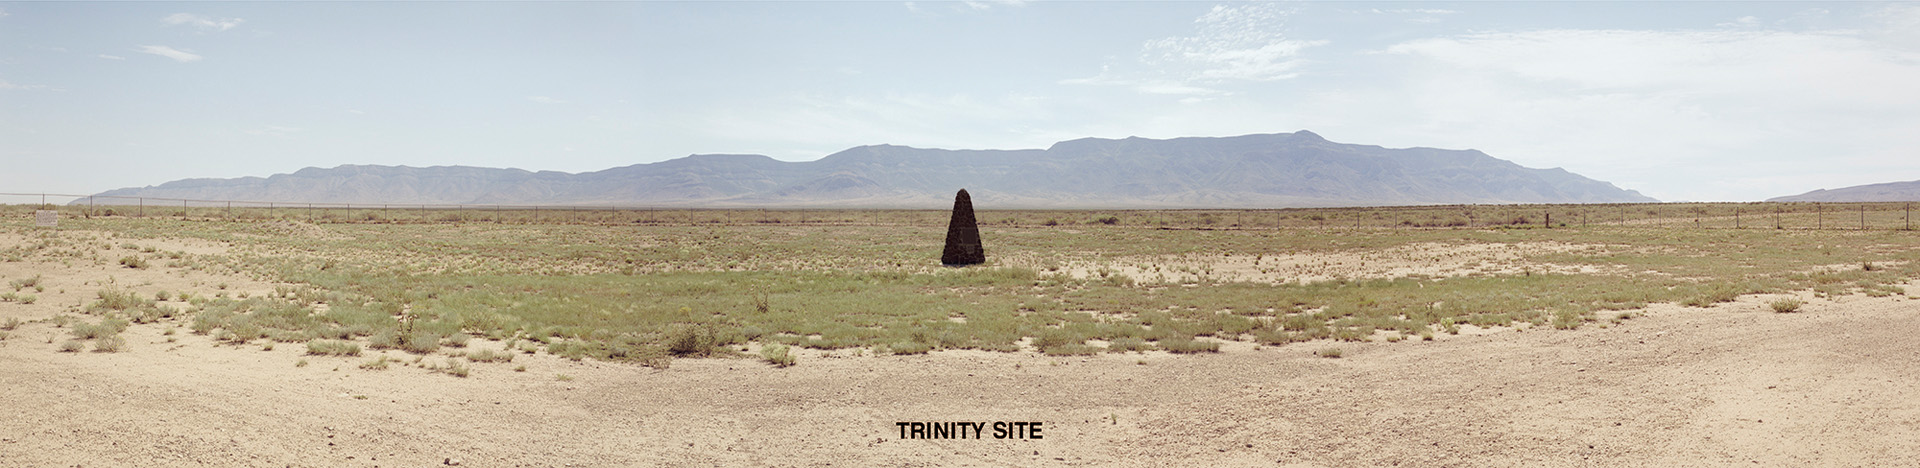 "This is the site of the world's first nuclear explosion.  It occurred on July 16, 1945, at 5:29:45 a.m. Mountain War Time on the Alamogordo Bombing and Gunnery Range of the White Sands Proving Ground in the Jornada del Muerto desert in New Mexico.  The 20 kiloton ""Trinity"" explosion was the birth of the Atomic Age."